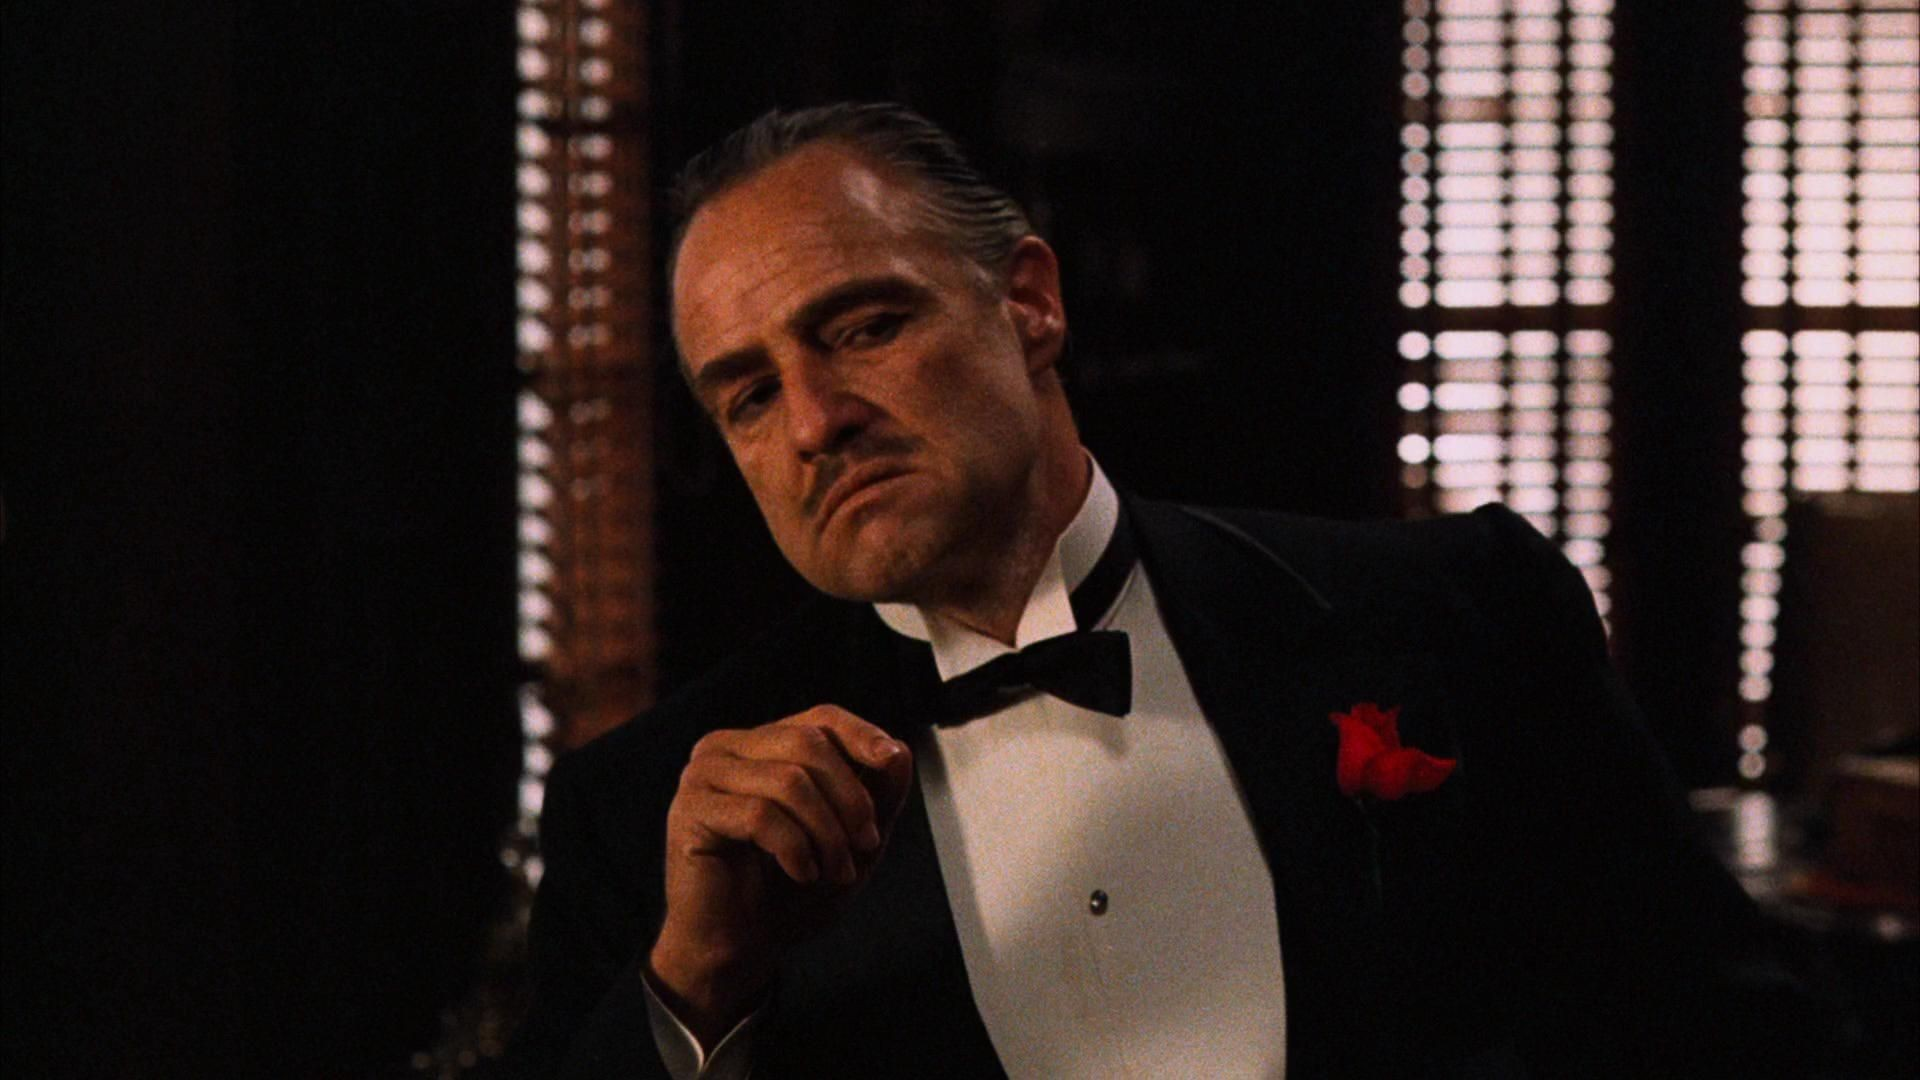 Res: 1920x1080, Godfather Wallpaper New How You Can Watch the Godfather Reunion Streaming